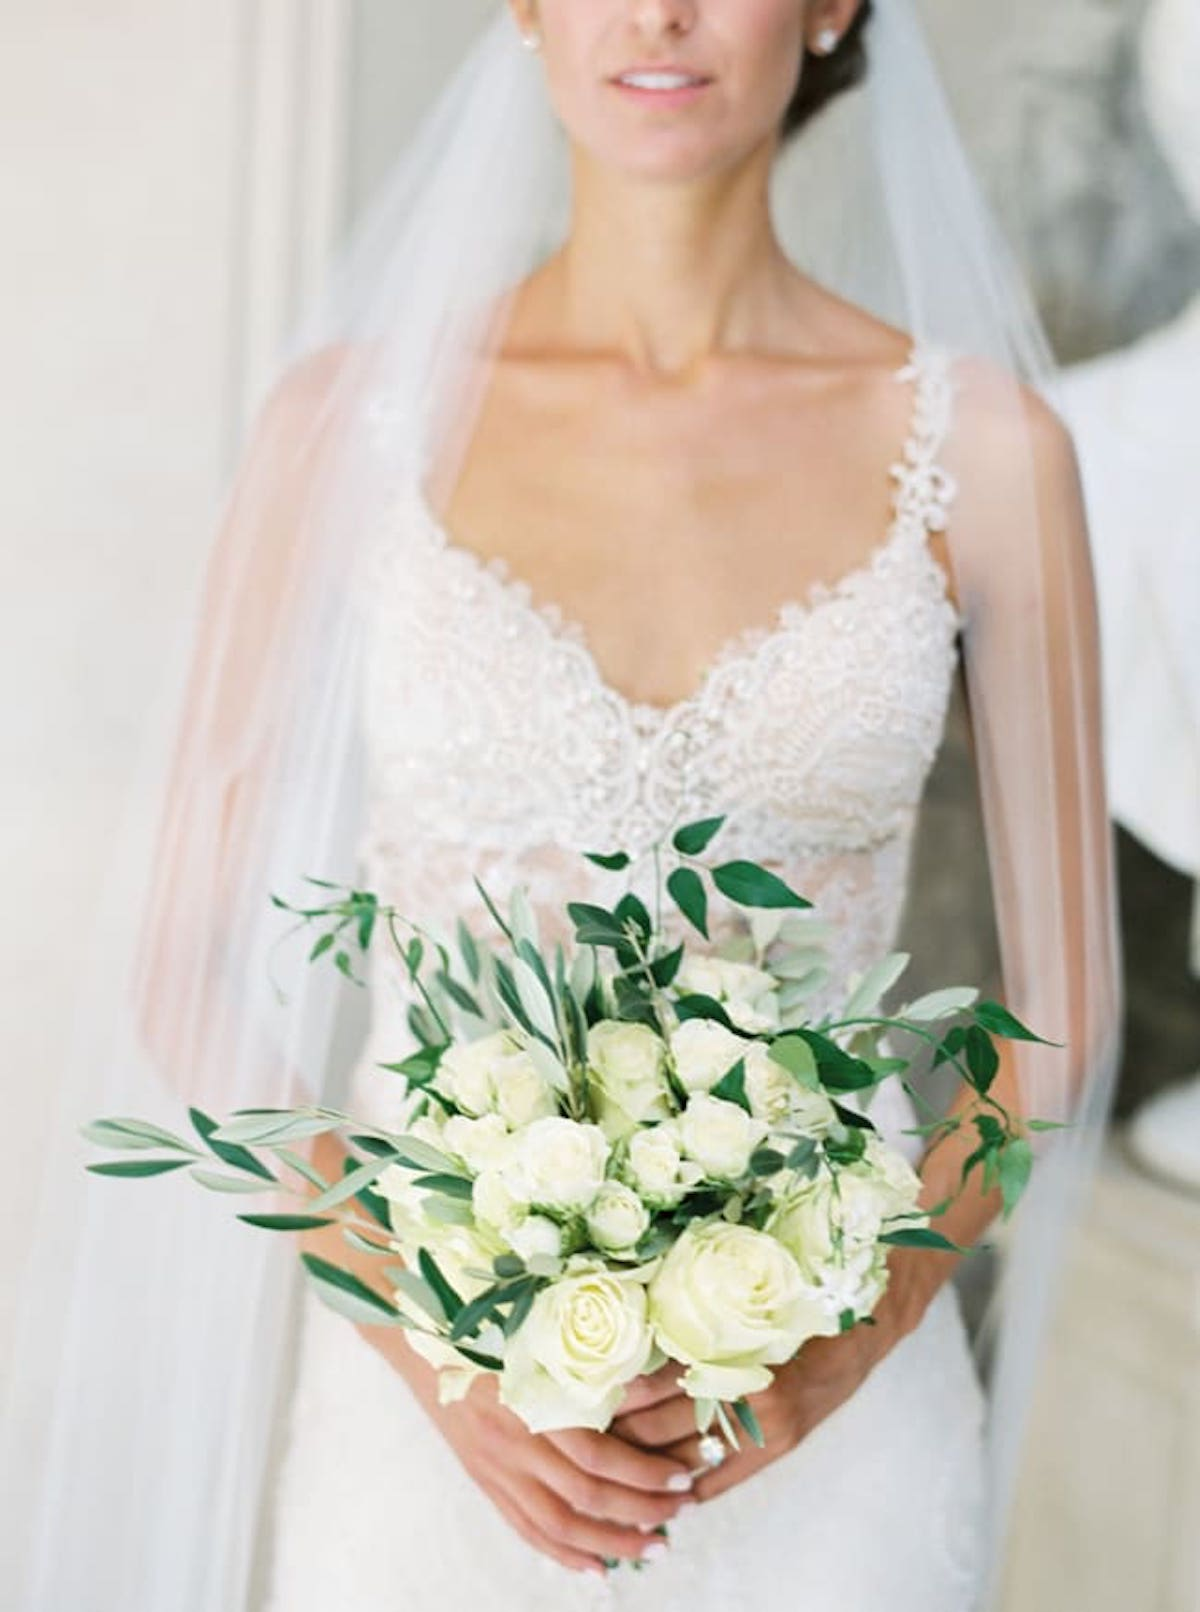 Bride poses with white rose bridal bouquet